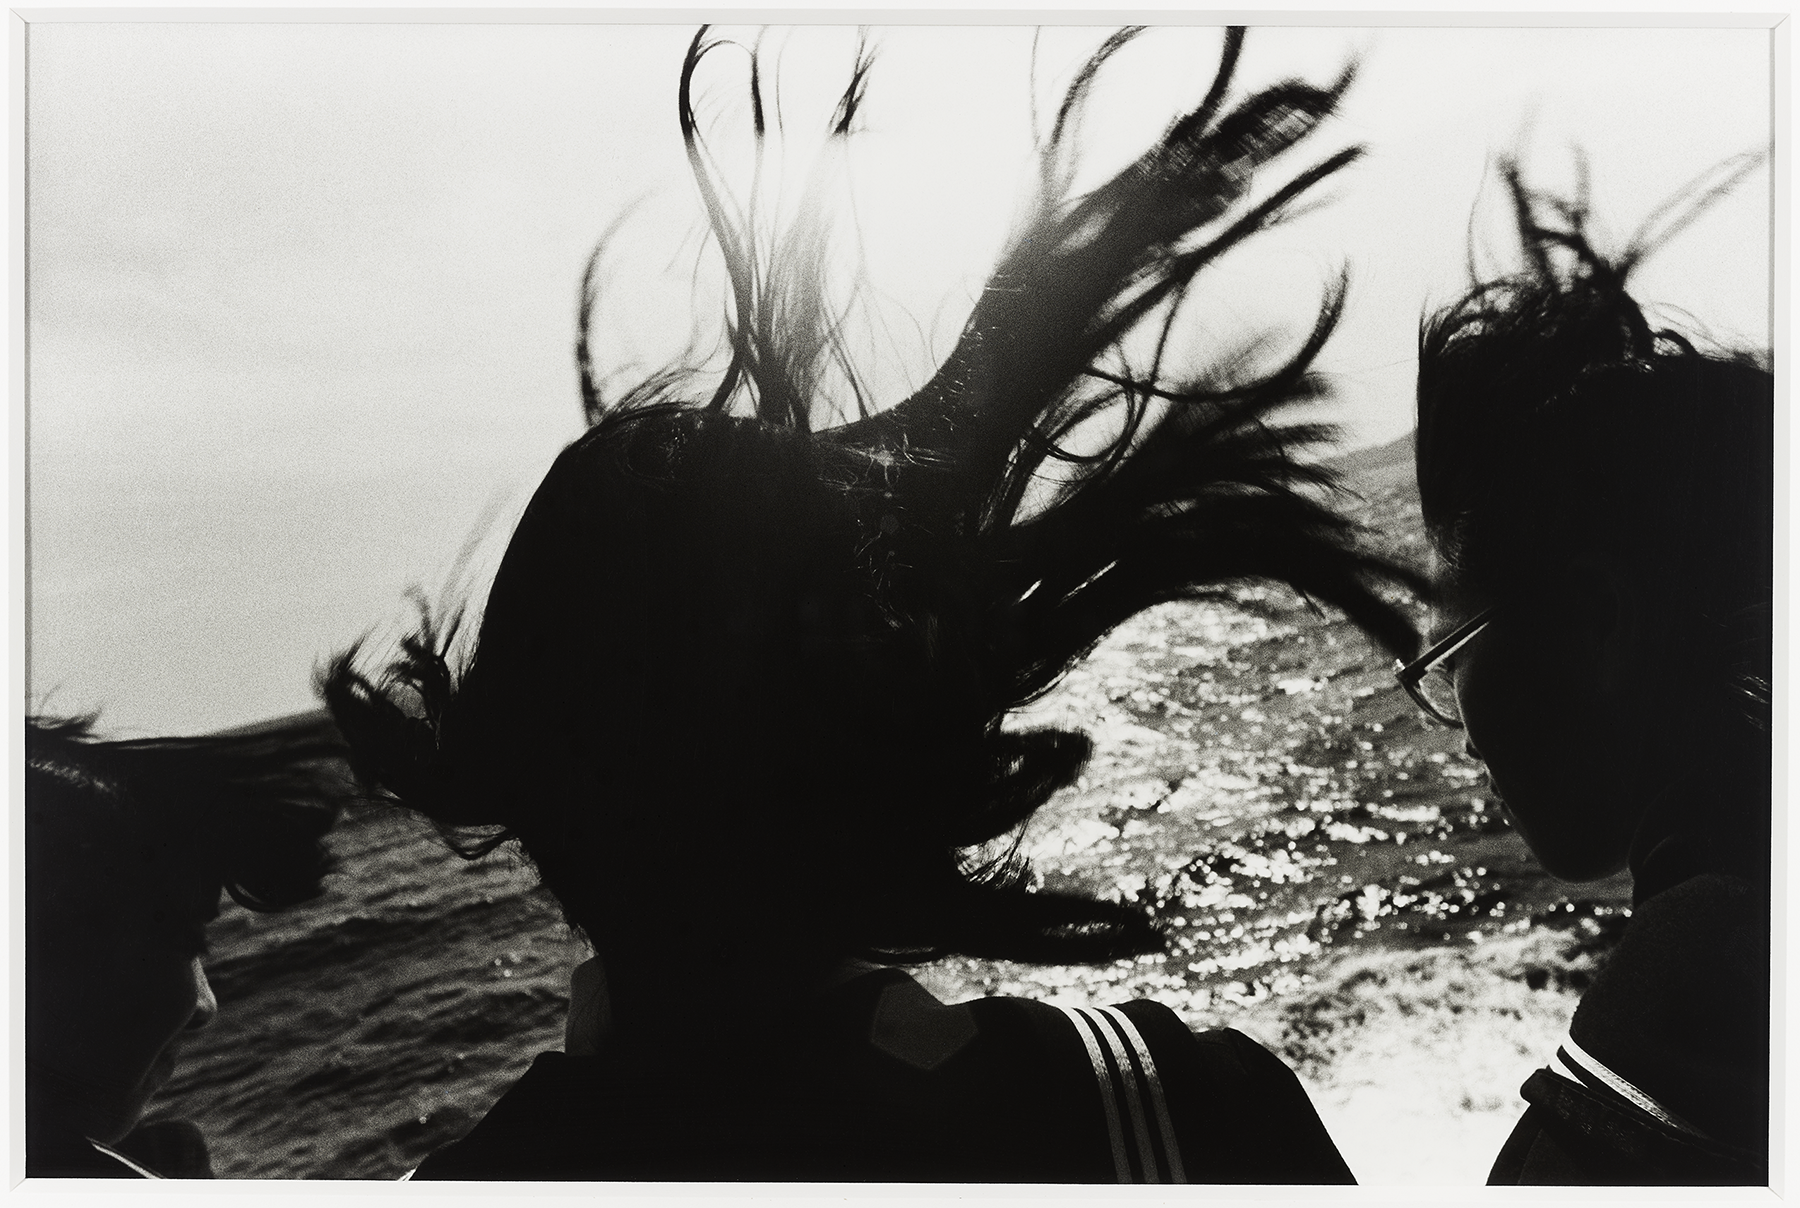 Seikan Ferryboat, from the series Karasu (Ravens); Fukase Masahisa (1934–2012); Japan, 1976; gelatin silver print; purchase and partial gift from the Gloria Katz and Willard Huyck Collection, S2018.2.24. © Masahisa Fukase Archives, courtesy of Michael Hoppen Gallery in London